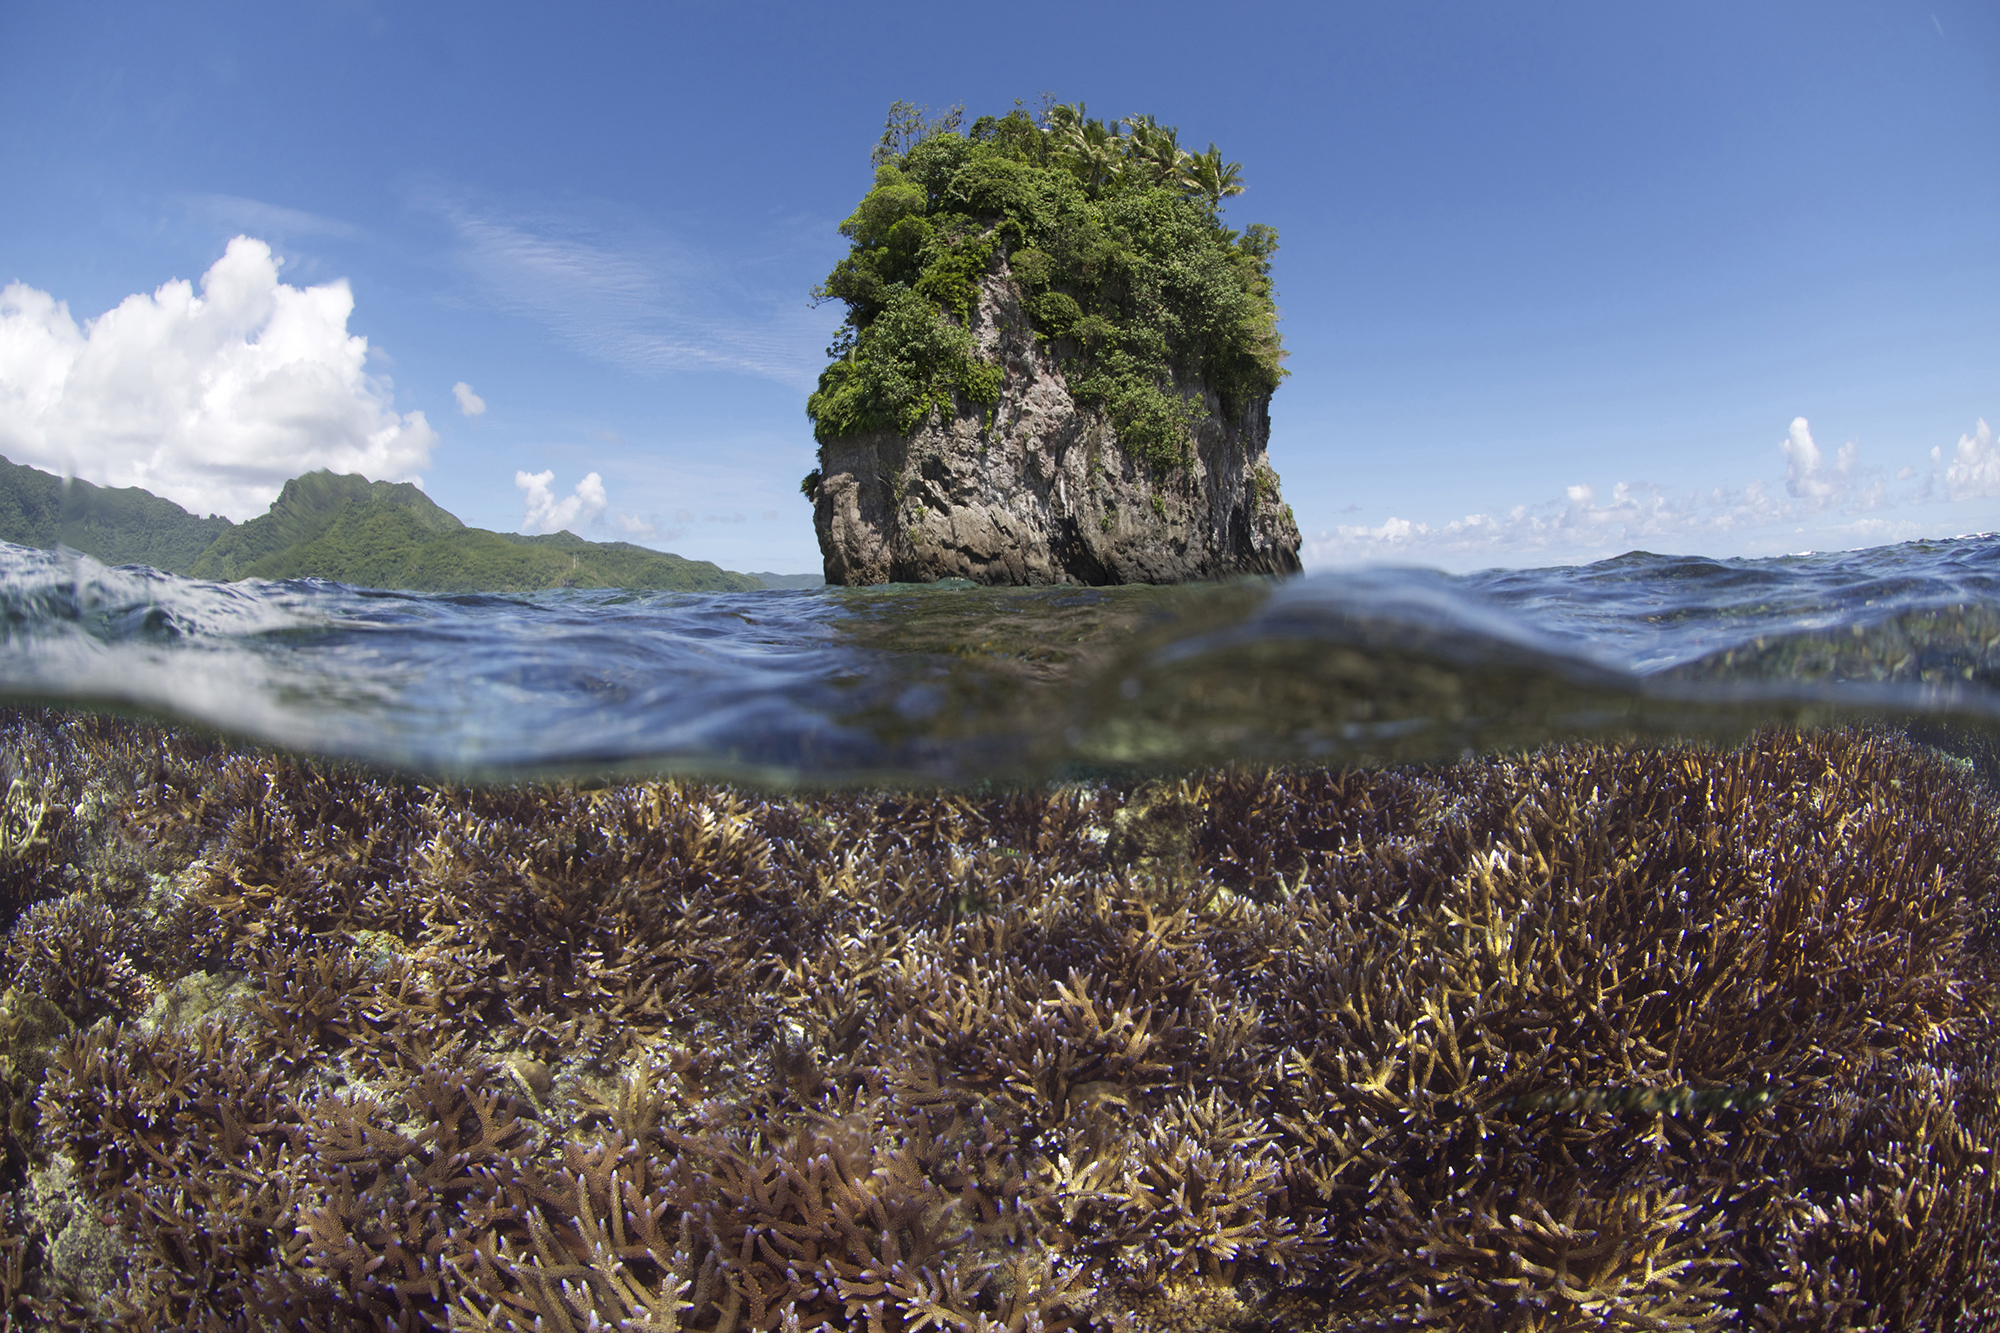 The coral bleaching event started in late 2014 – this is one of the early images taken in American Samoa before and during the bleaching.